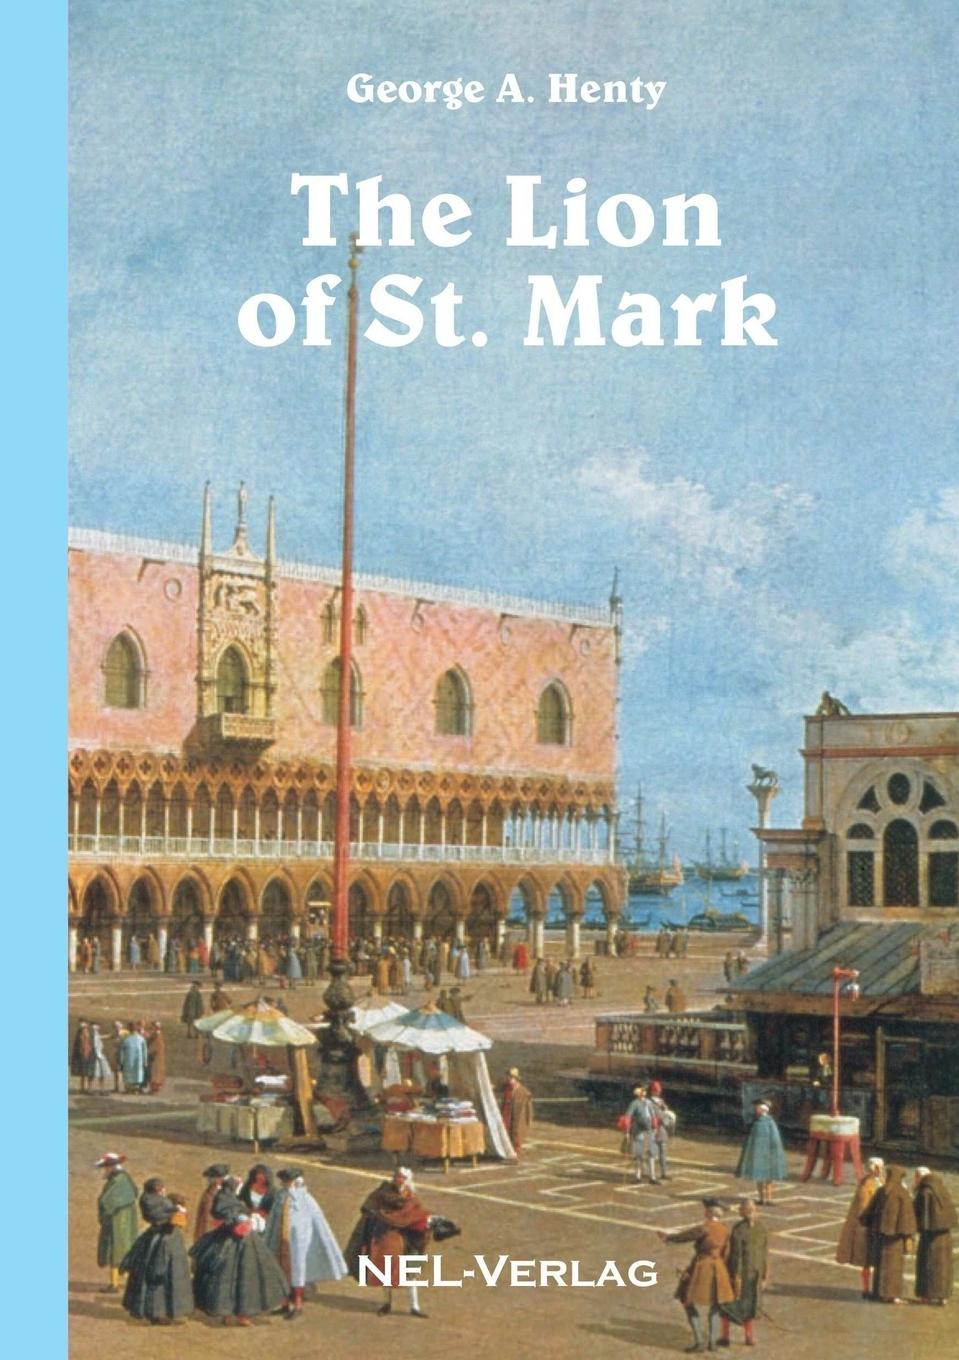 George A. Henty The Lion of St. Mark